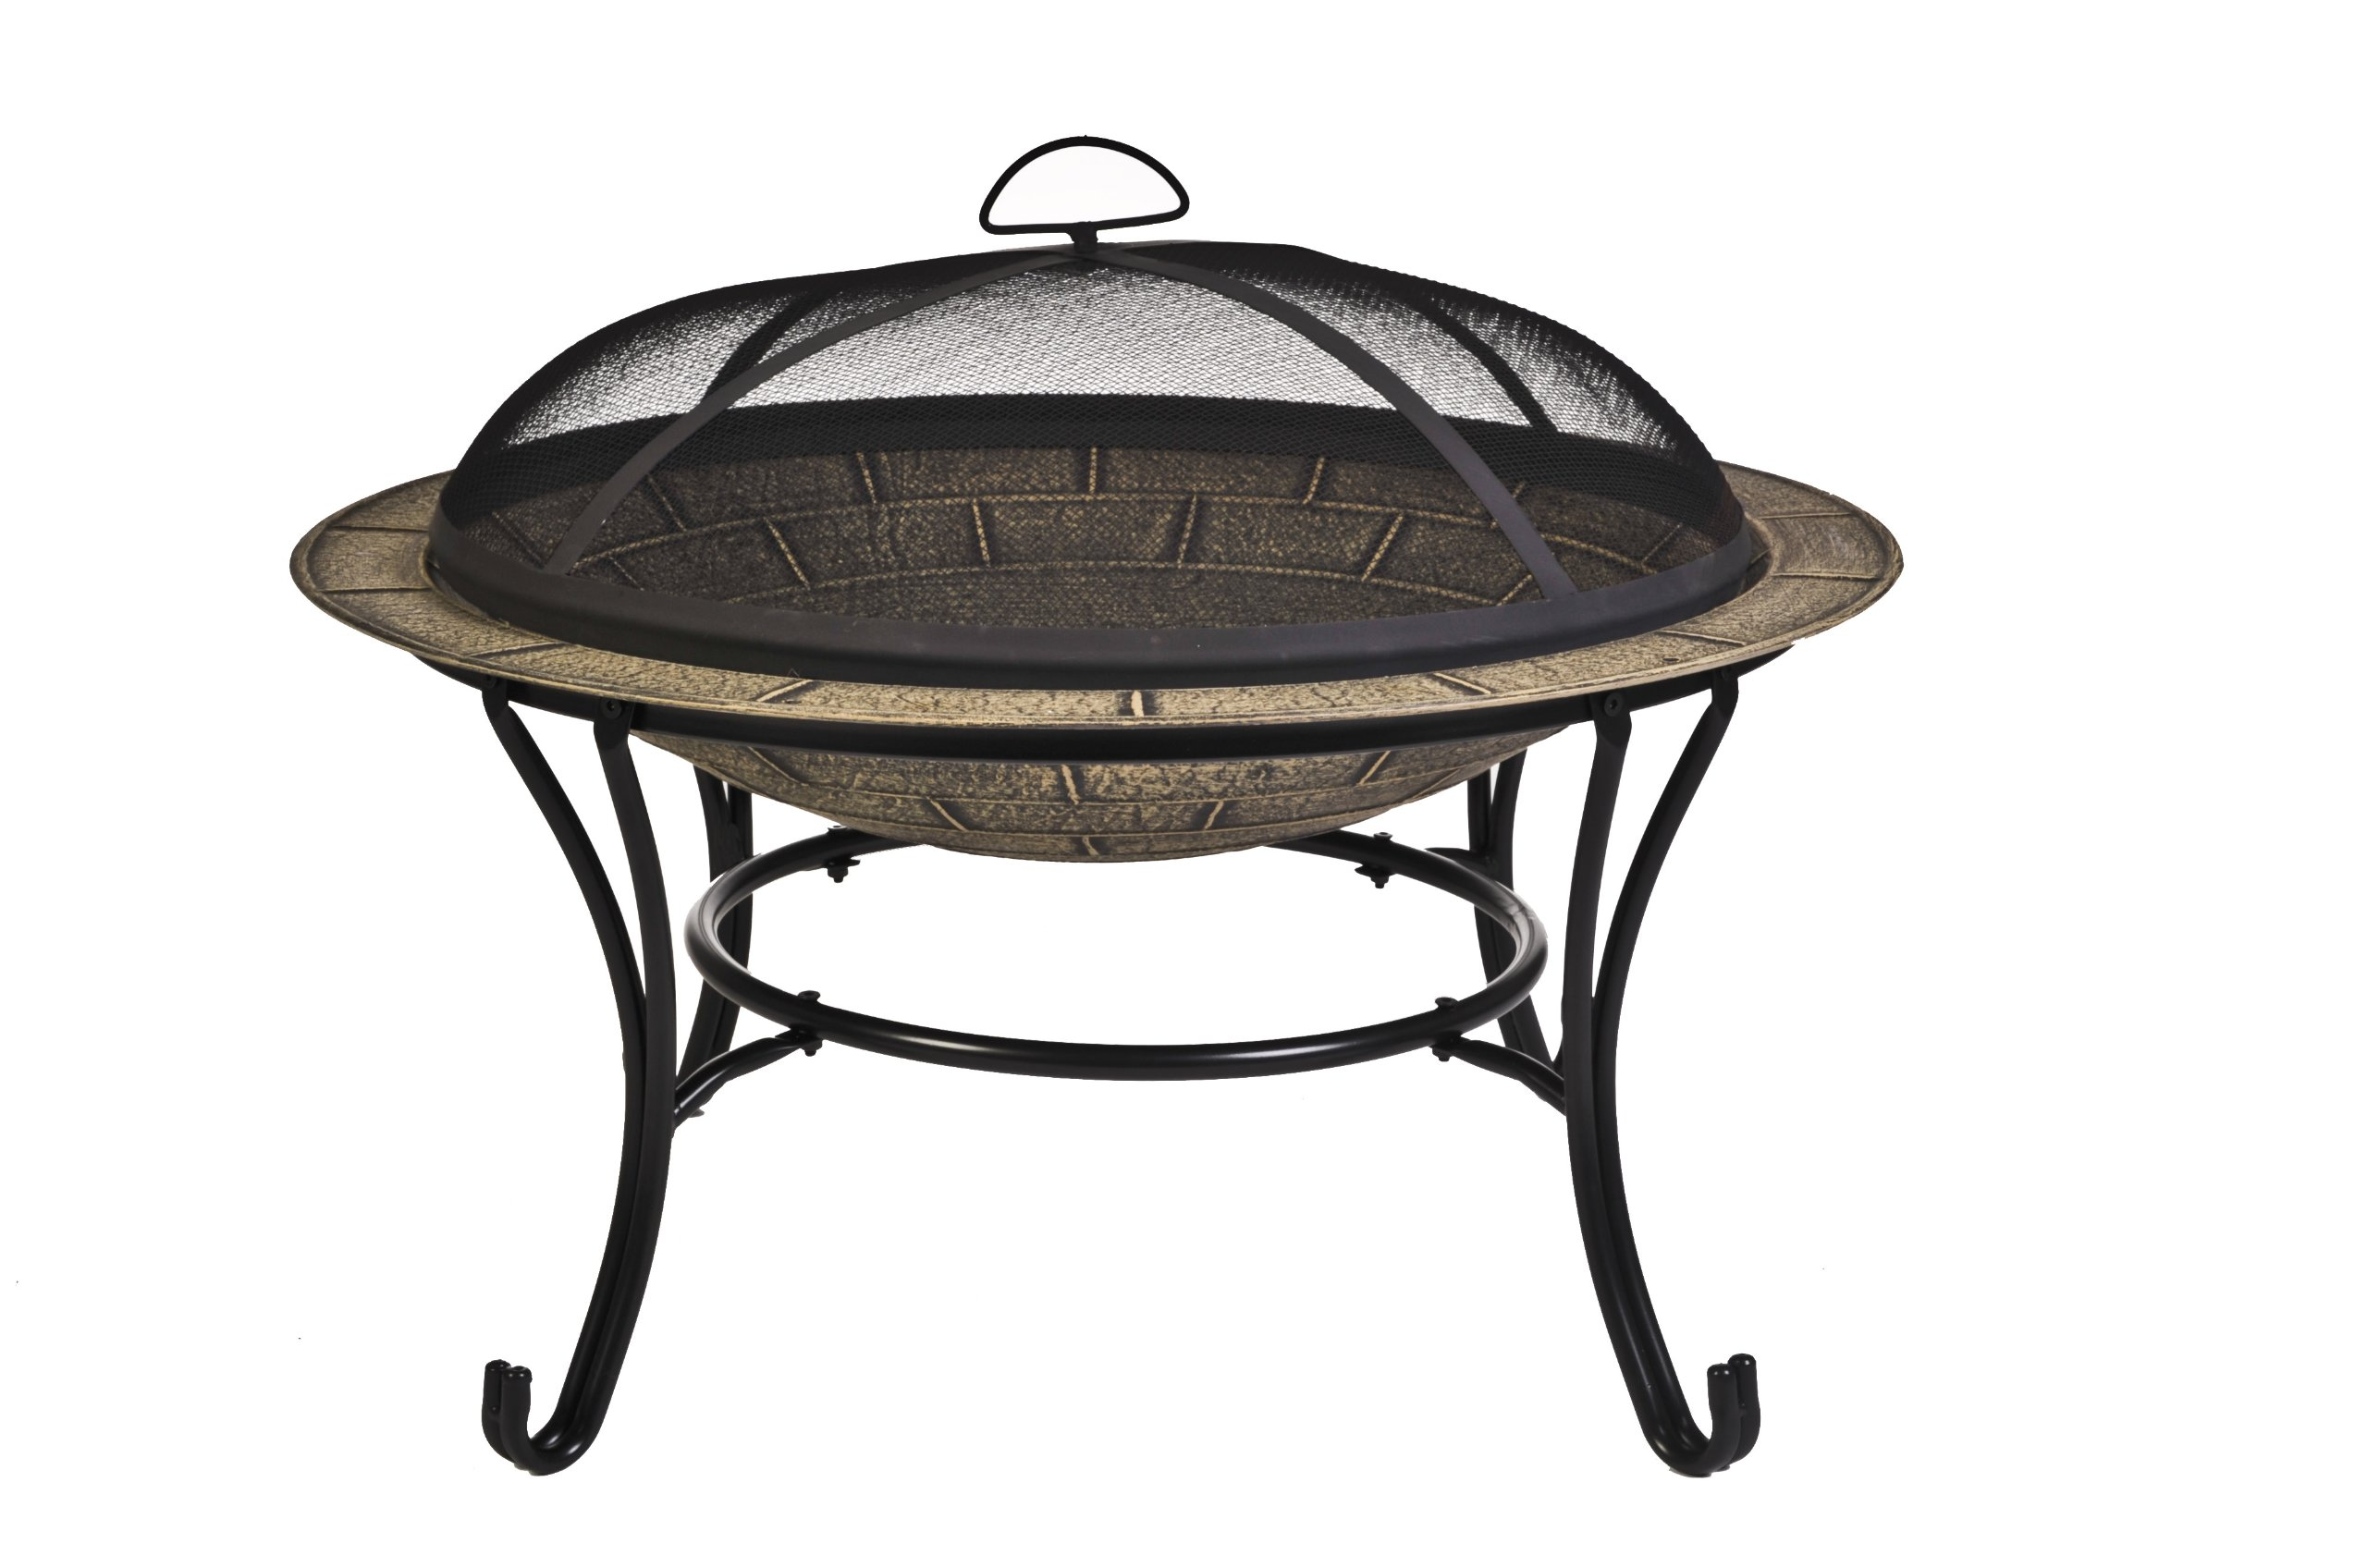 CobraCo FB6102 Round Cast Iron Brick Finish Fire Pit with Screen and Cover by CobraCo